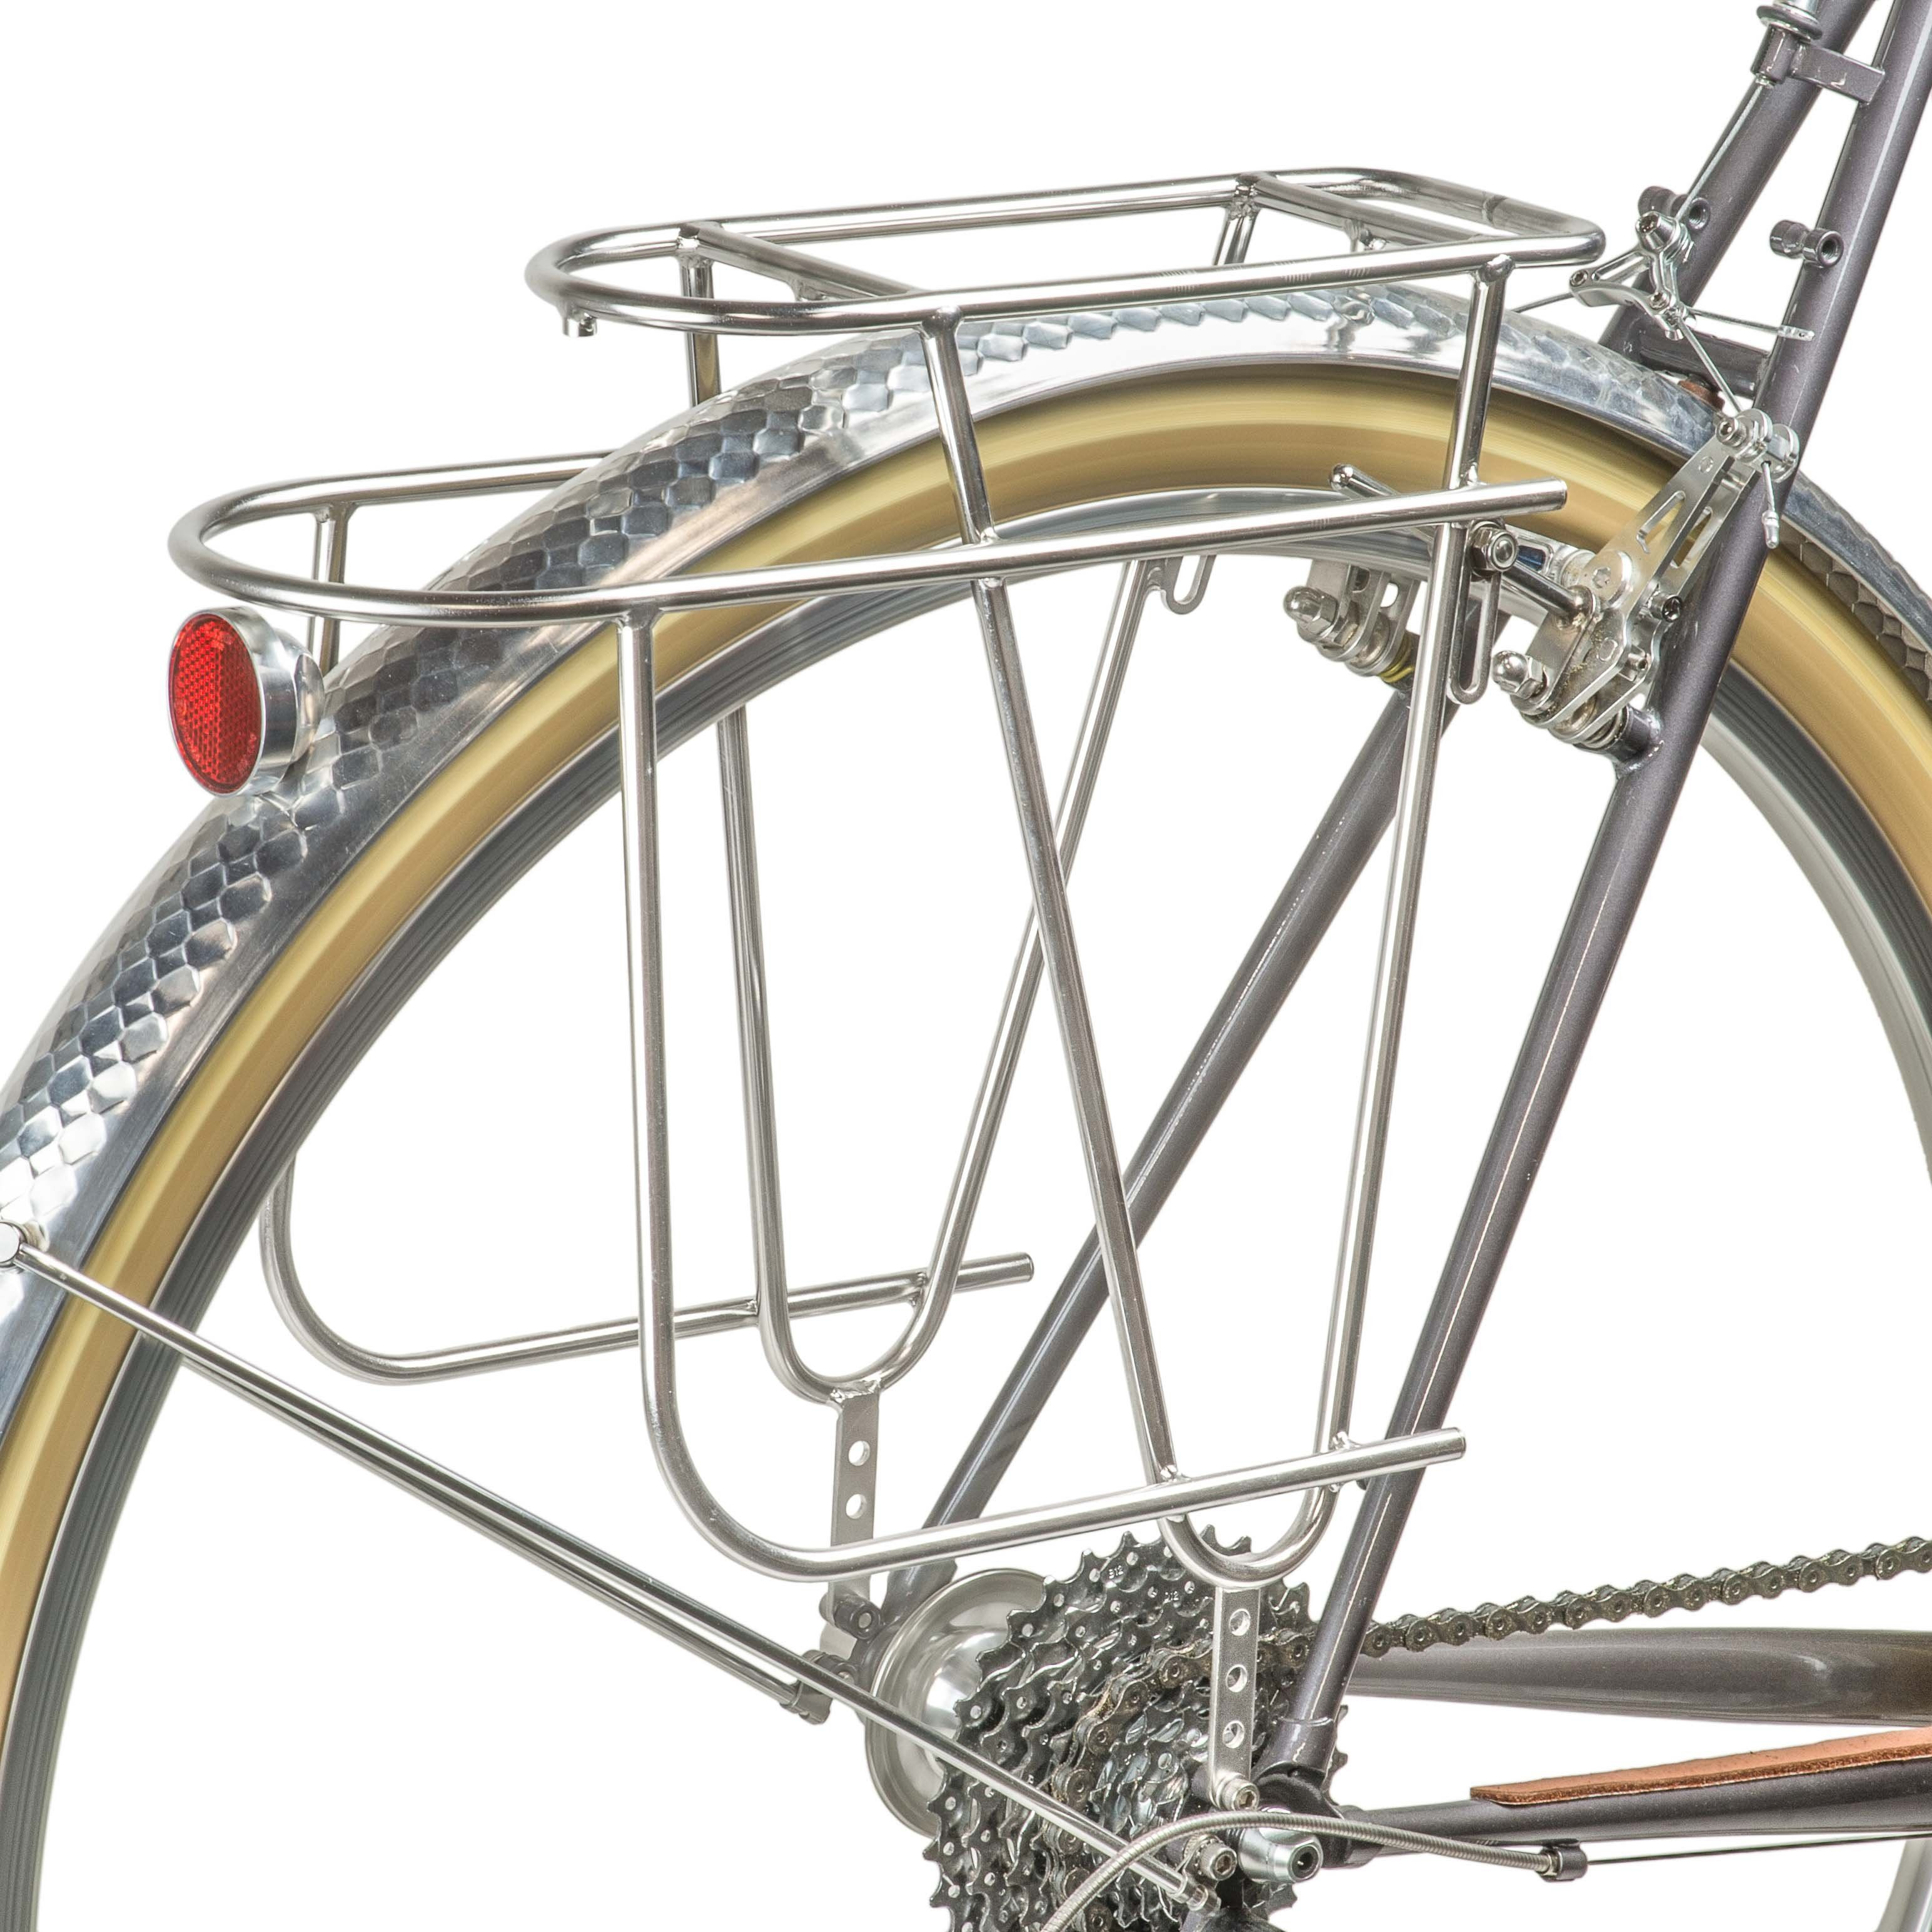 Polished Stainless Steel Velo Orange Constructeur Rear Rack